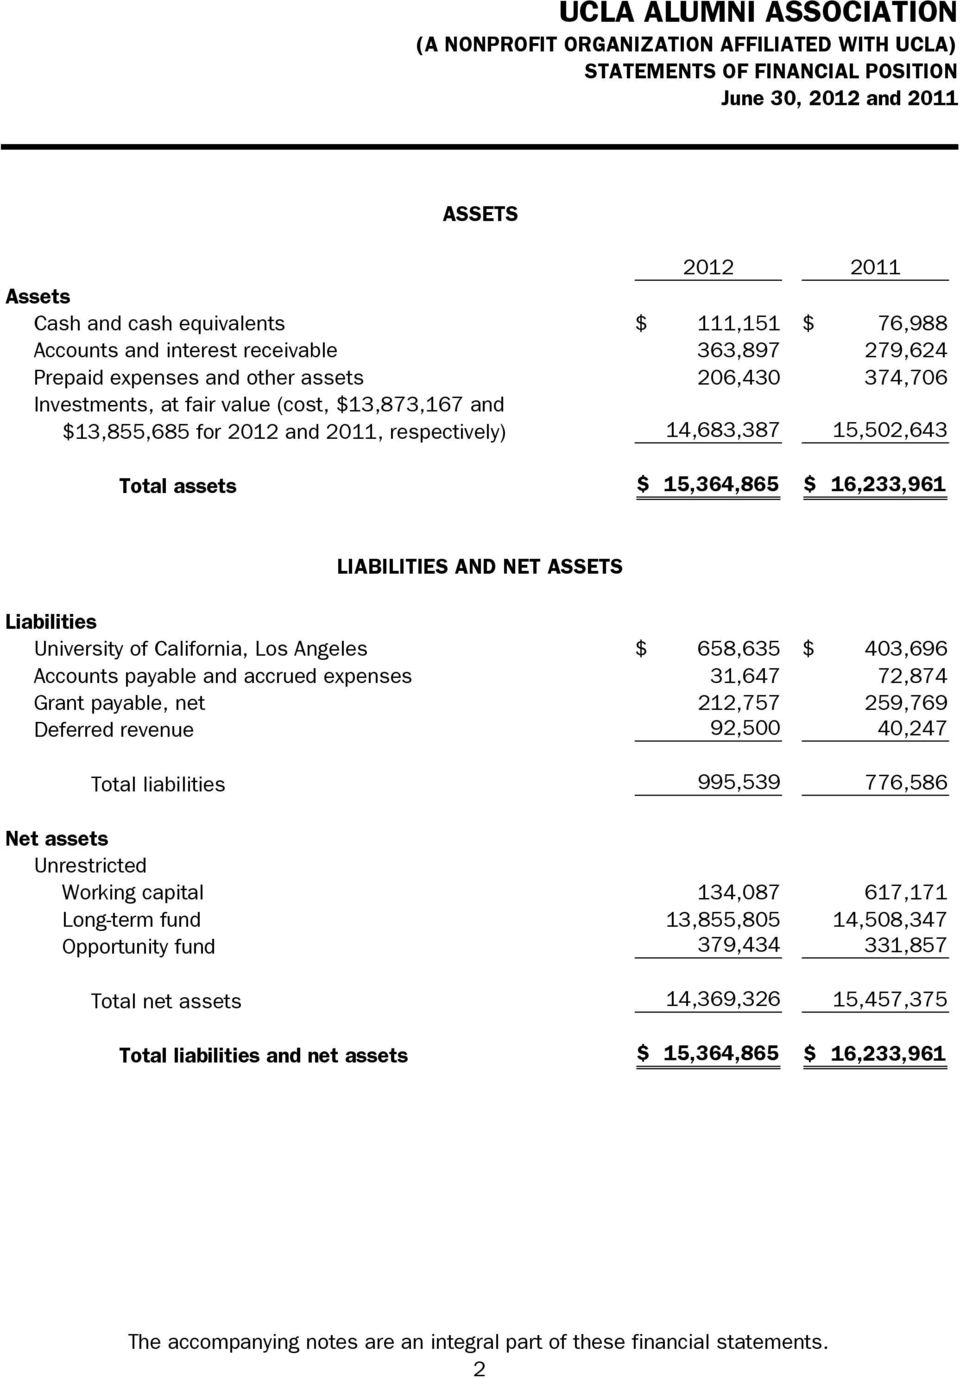 Liabilities University of California, Los Angeles $ 658,635 $ 403,696 Accounts payable and accrued expenses 31,647 72,874 Grant payable, net 212,757 259,769 Deferred revenue 92,500 40,247 Total